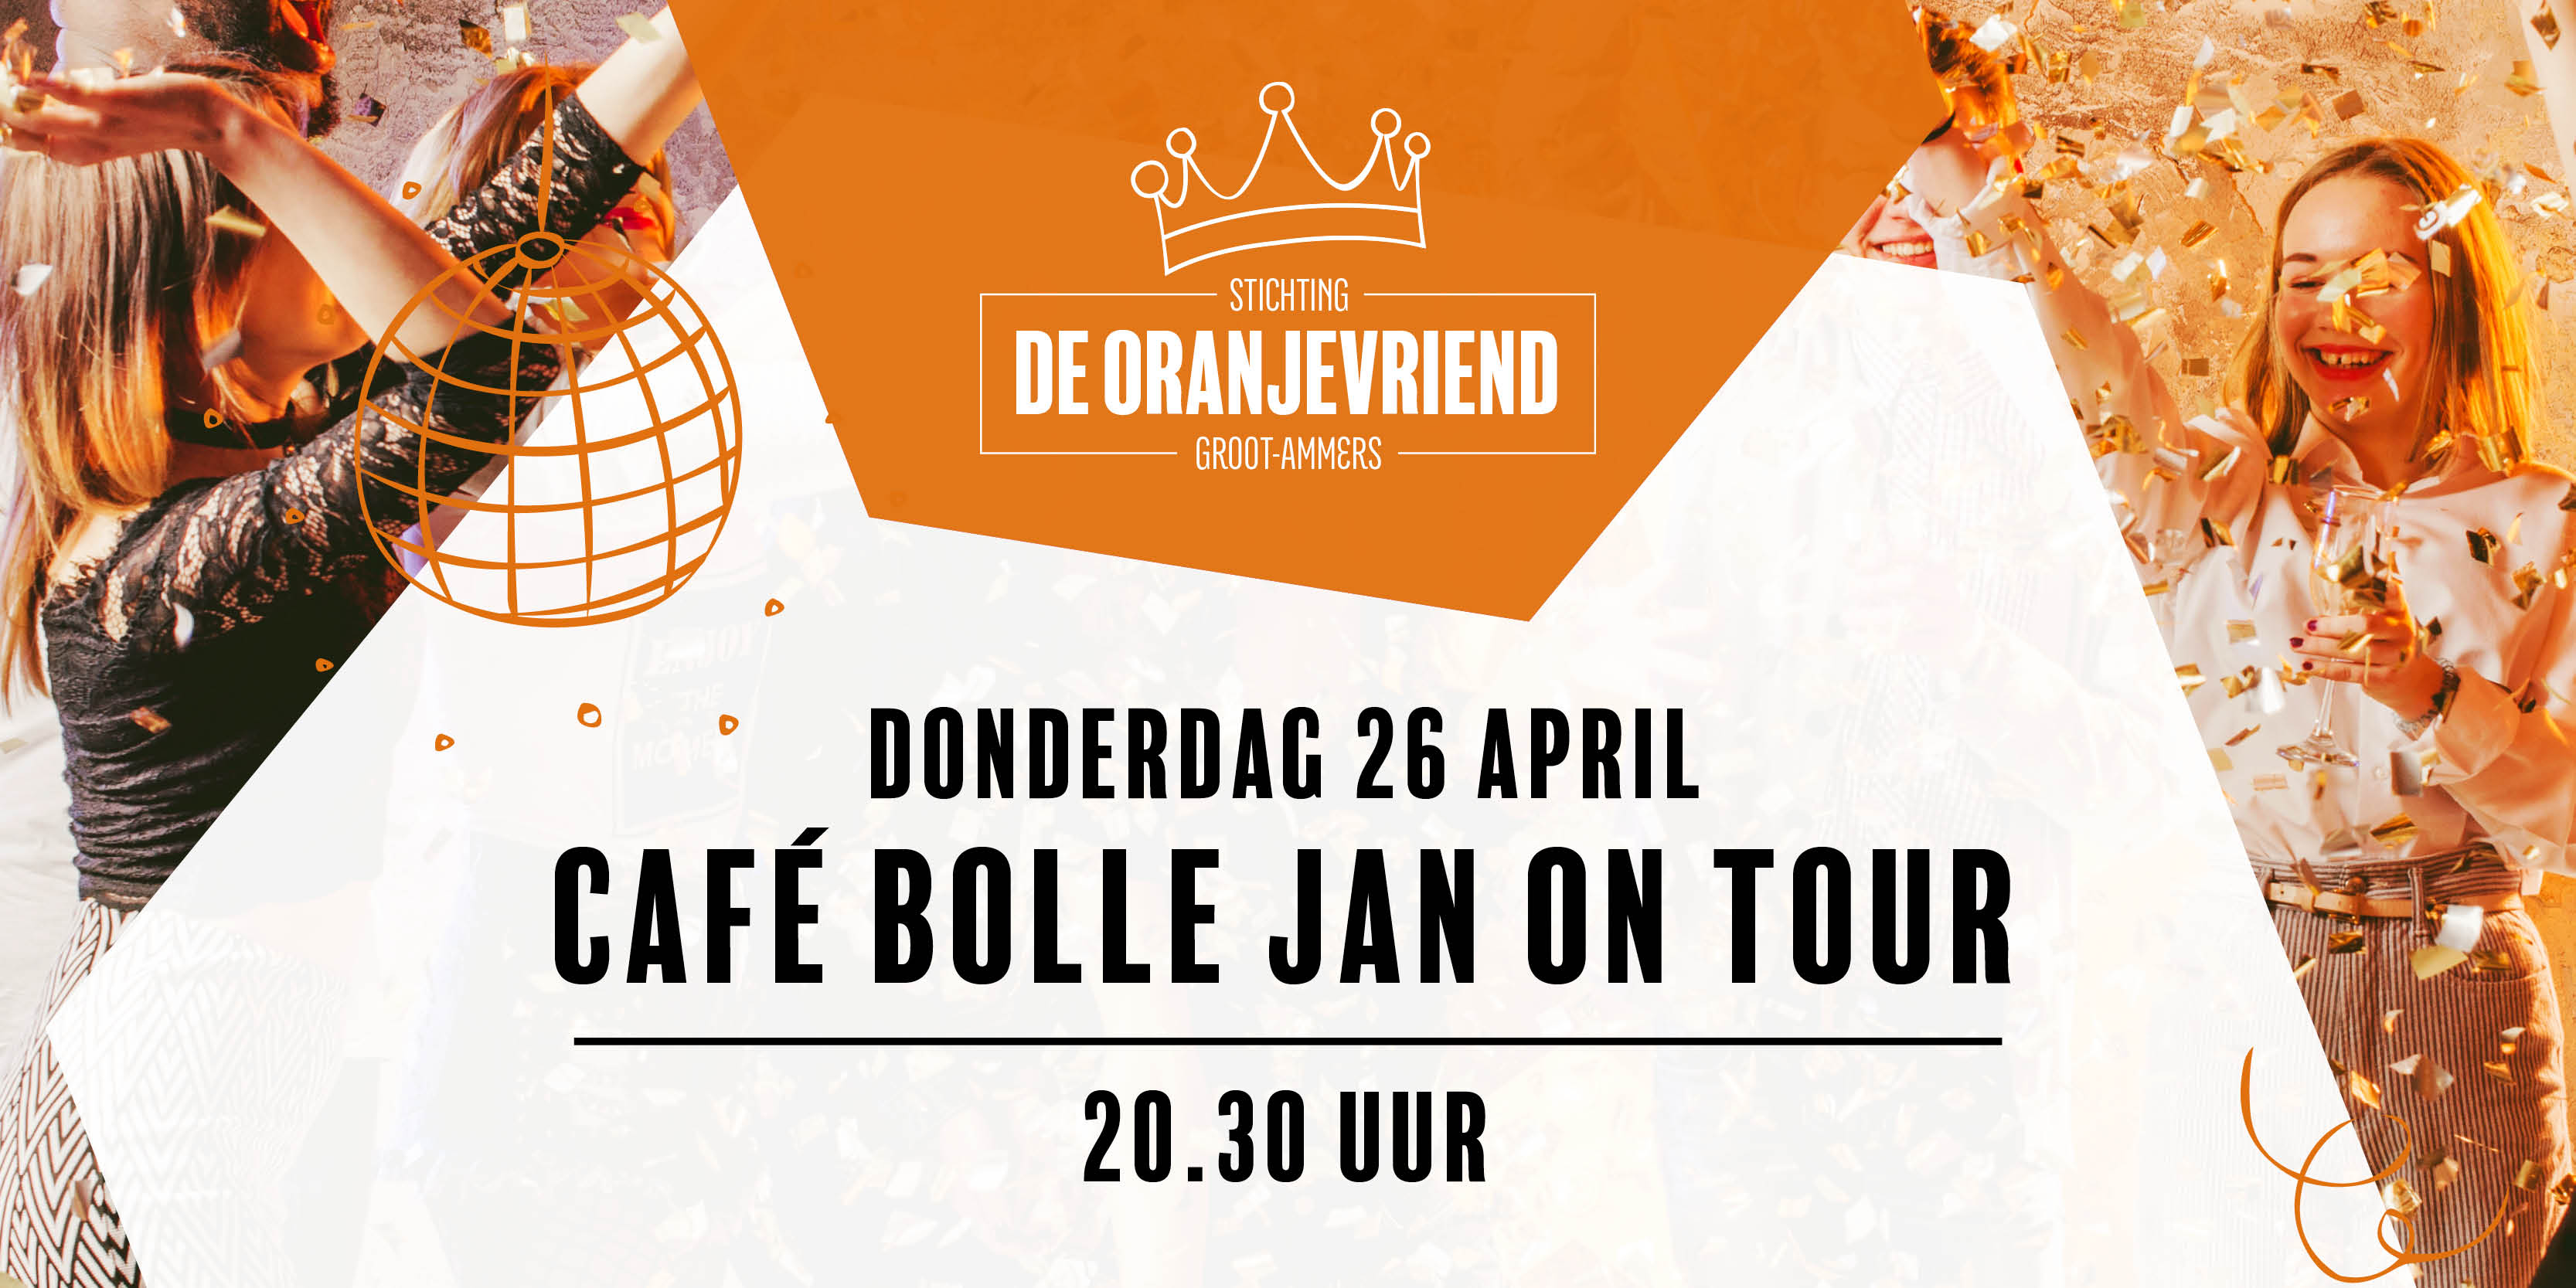 Café Bolle Jan on tour